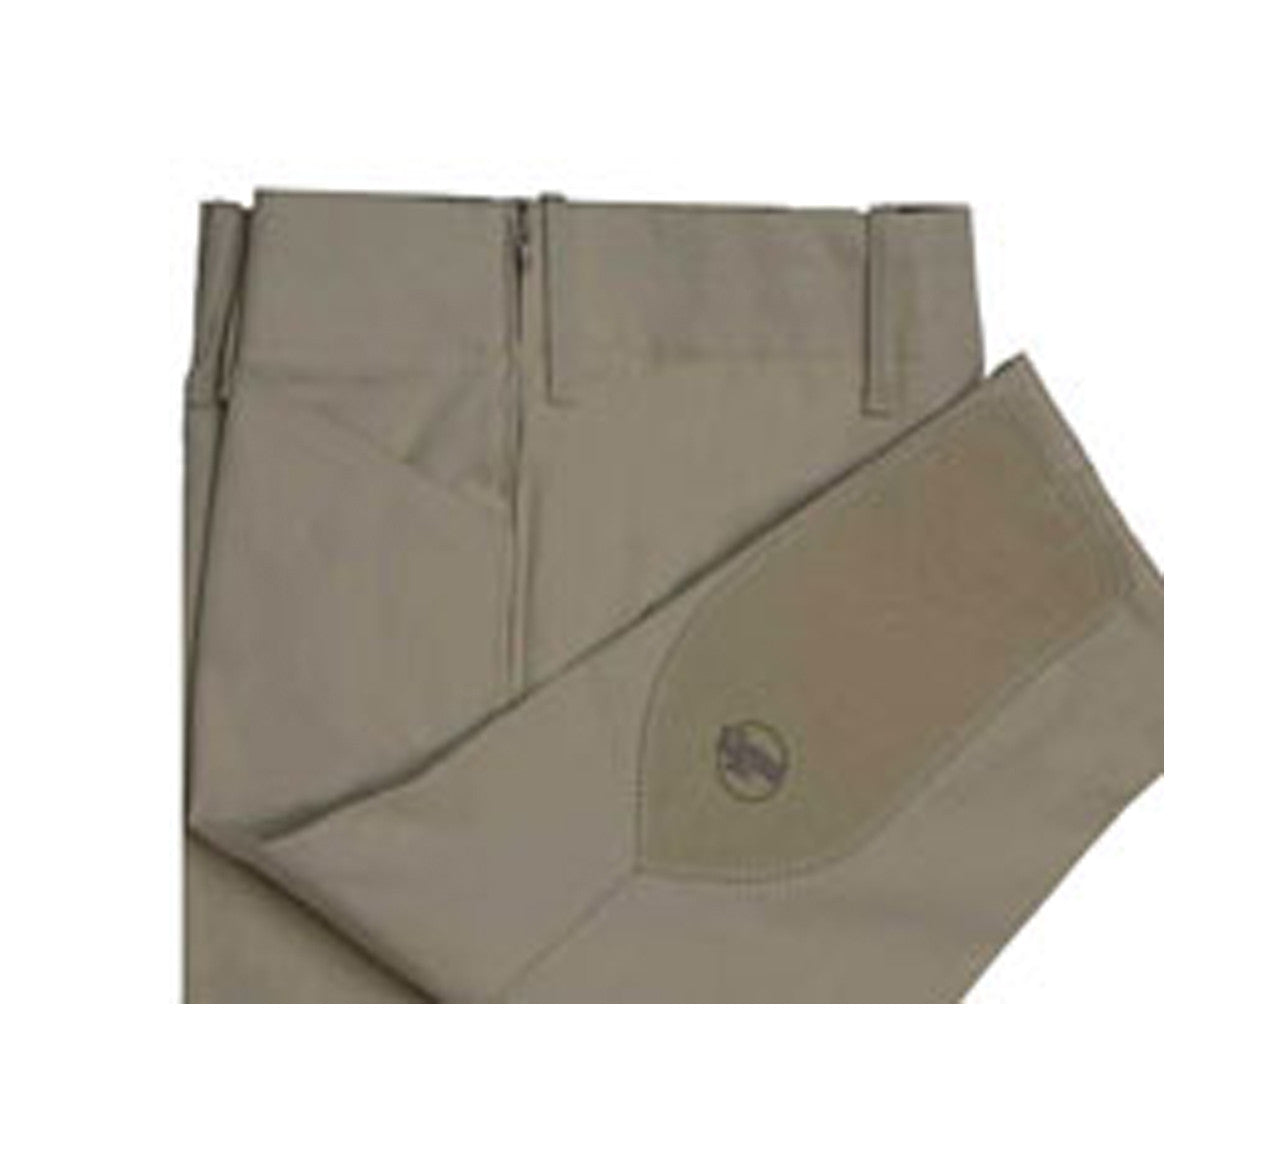 Grand Prix Hampton II Breeches - SALE - North Shore Saddlery